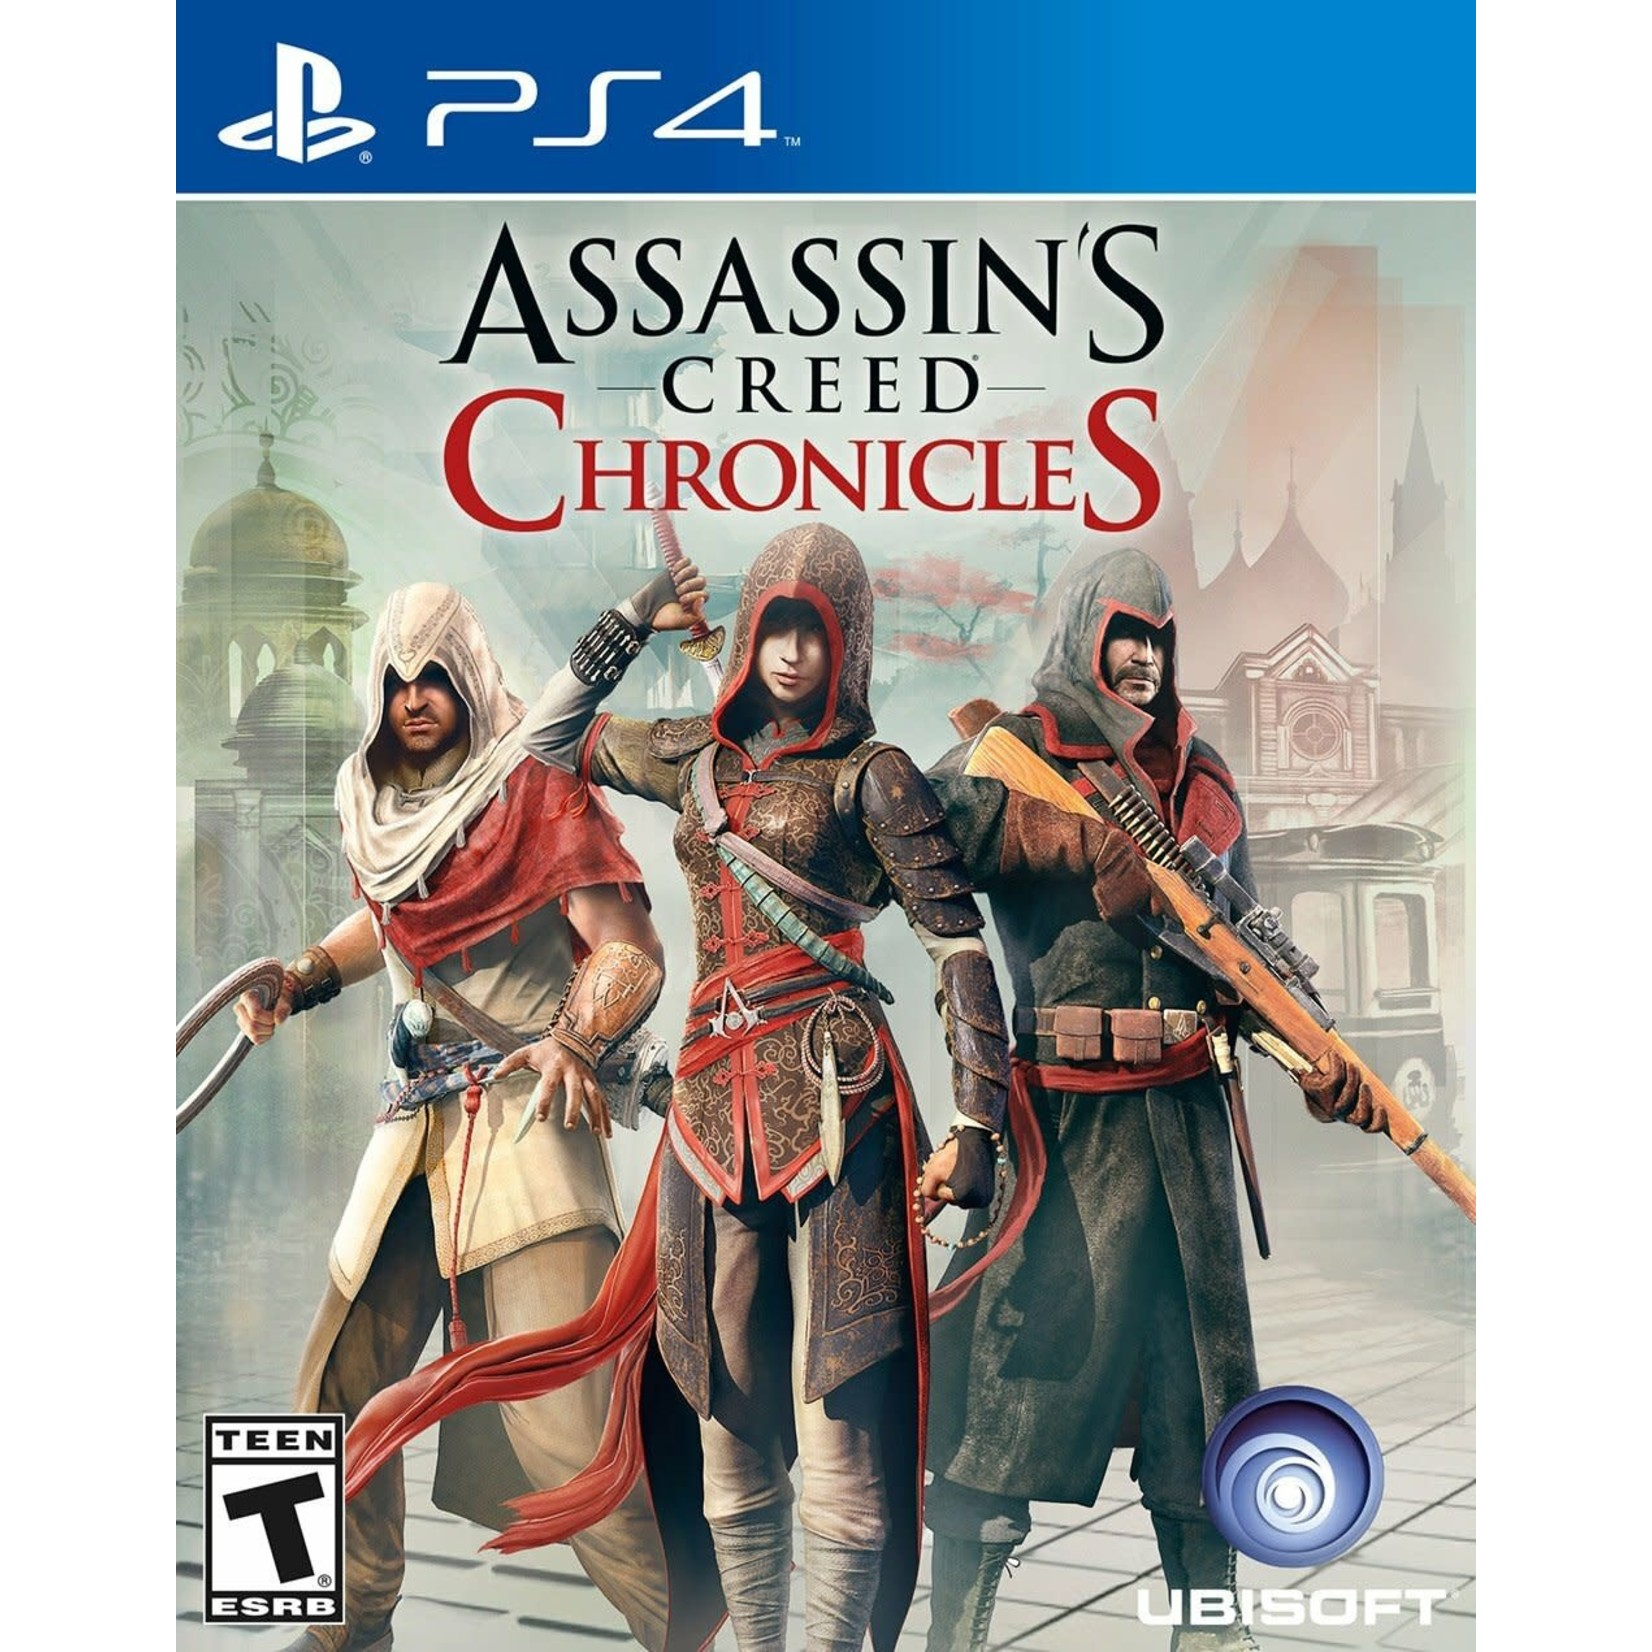 PS4-Assassin's Creed Chronicles